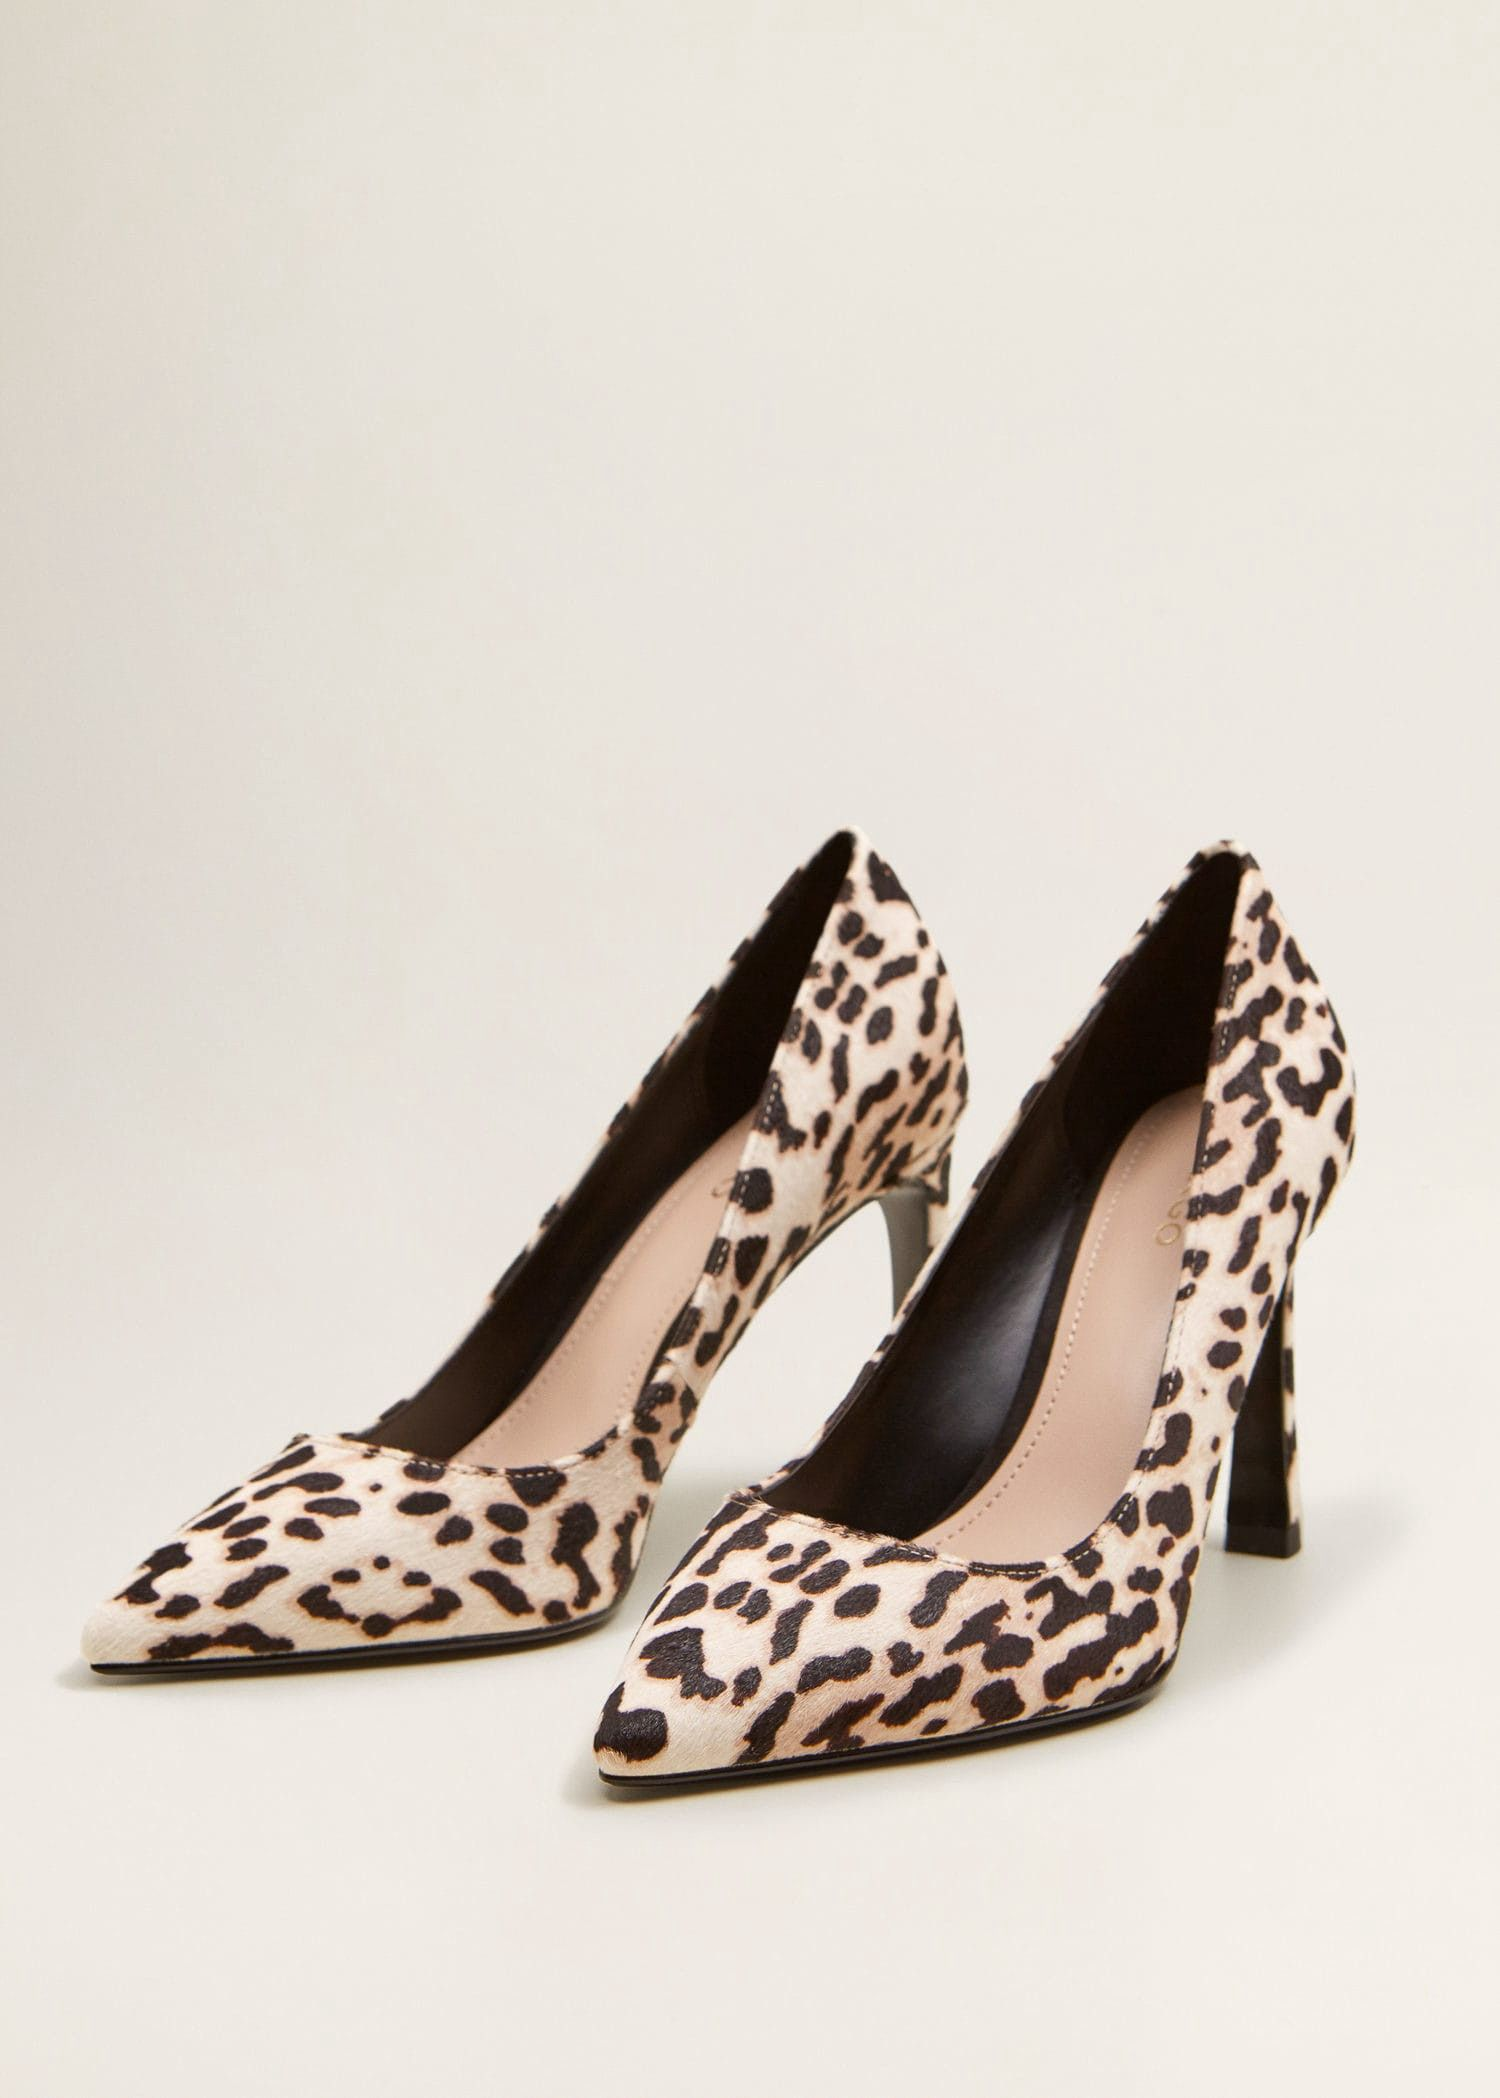 fb82043fb959 Mango Leather Pumps - 6 in 2019 | Products | Leather pumps, Leopard ...